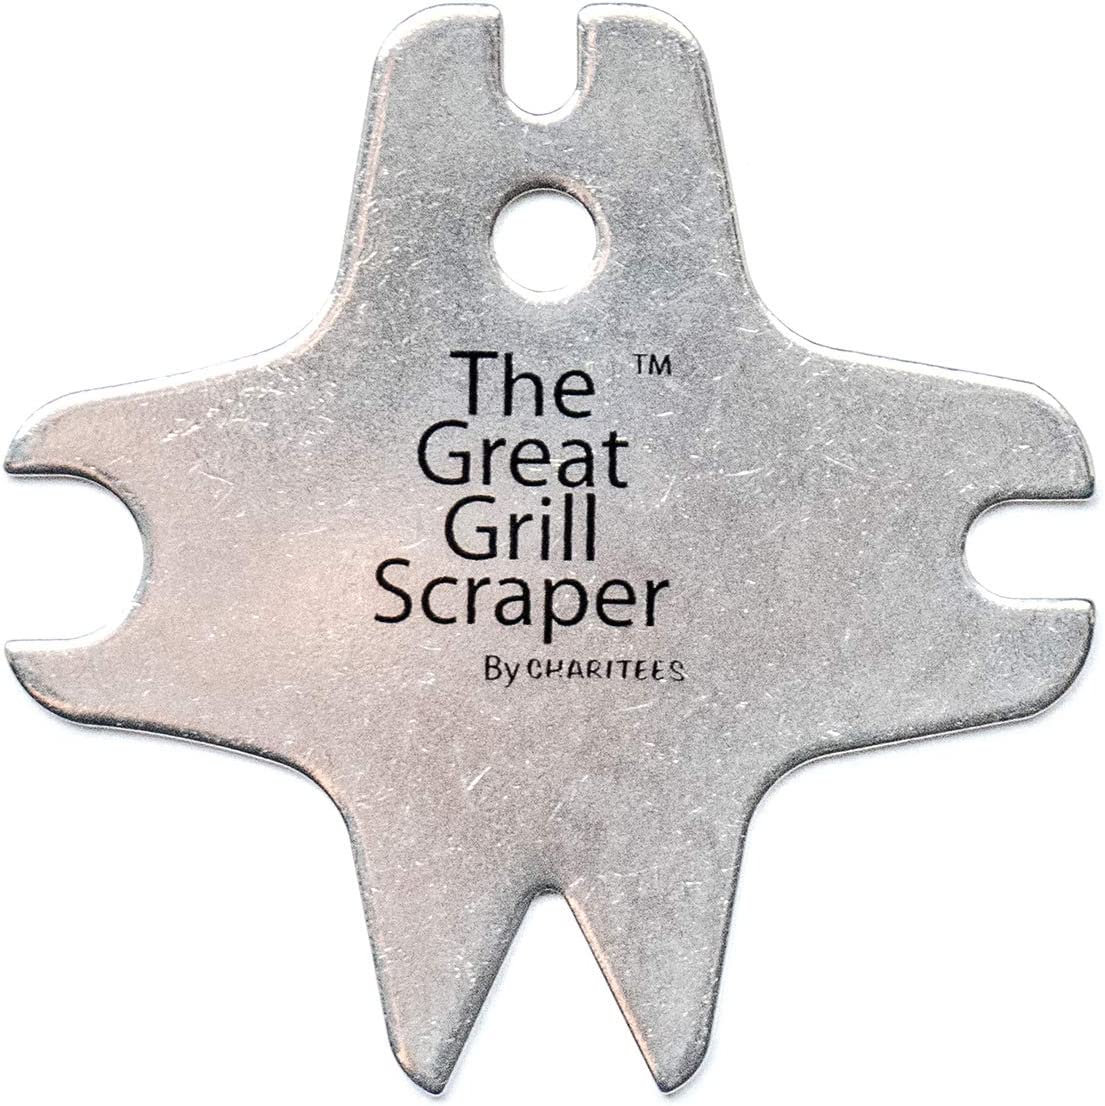 Charitees The Great Grill Scraper was Designed to get The Toughest of Grime Off of Your BBQ Grill grates!!! While not Leaving Behind The Harmful Wire bristles to get into Your Food.